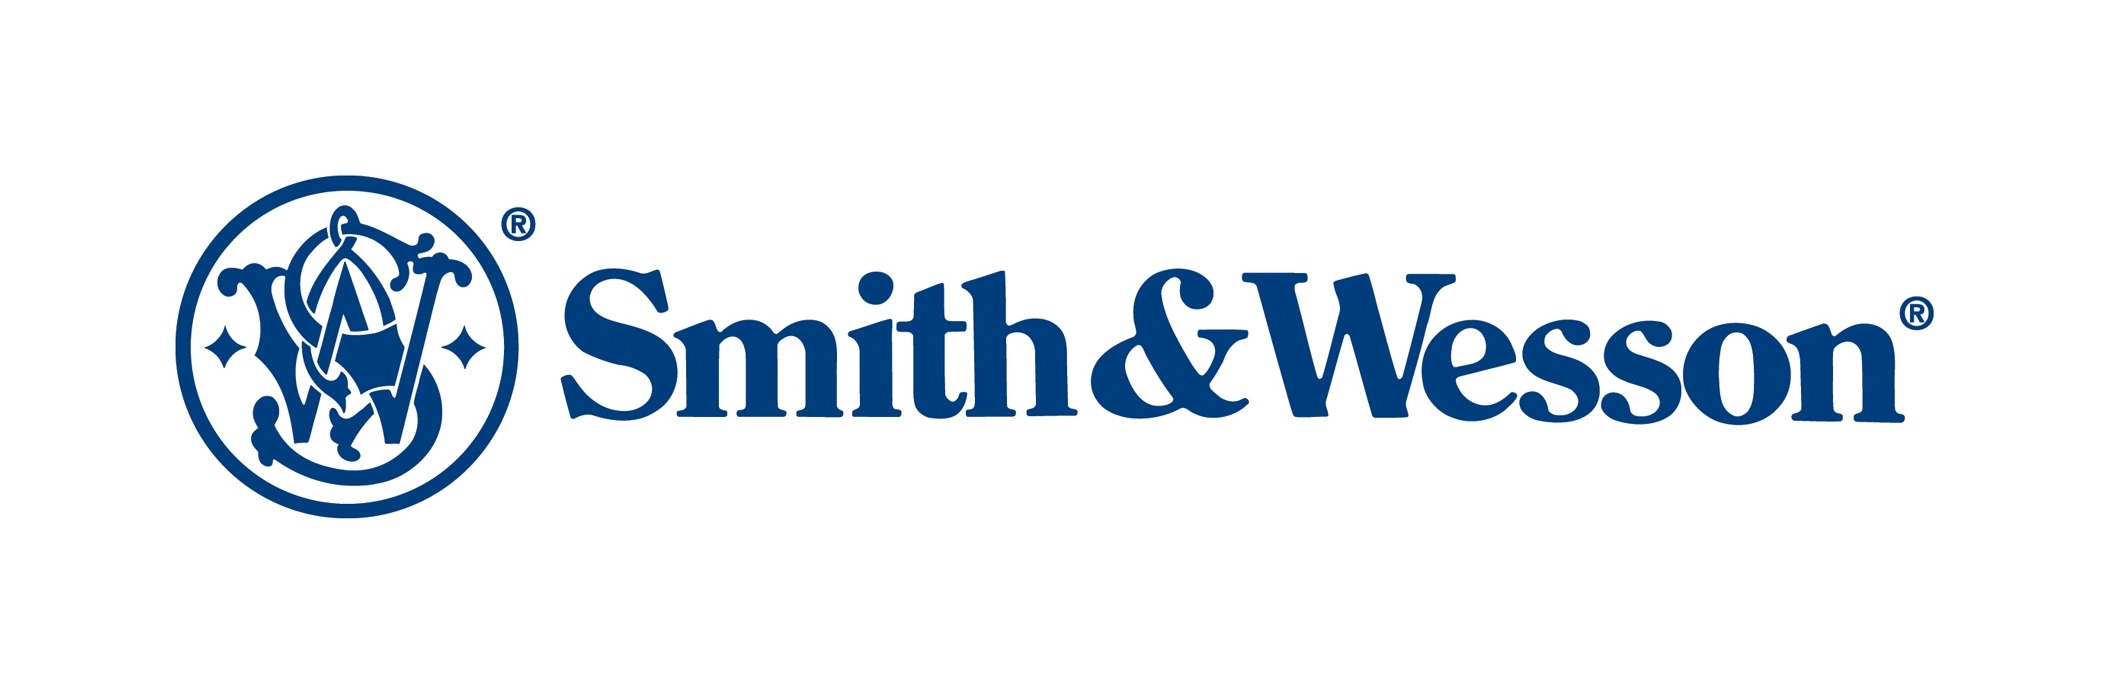 Smith & Wesson coupon code